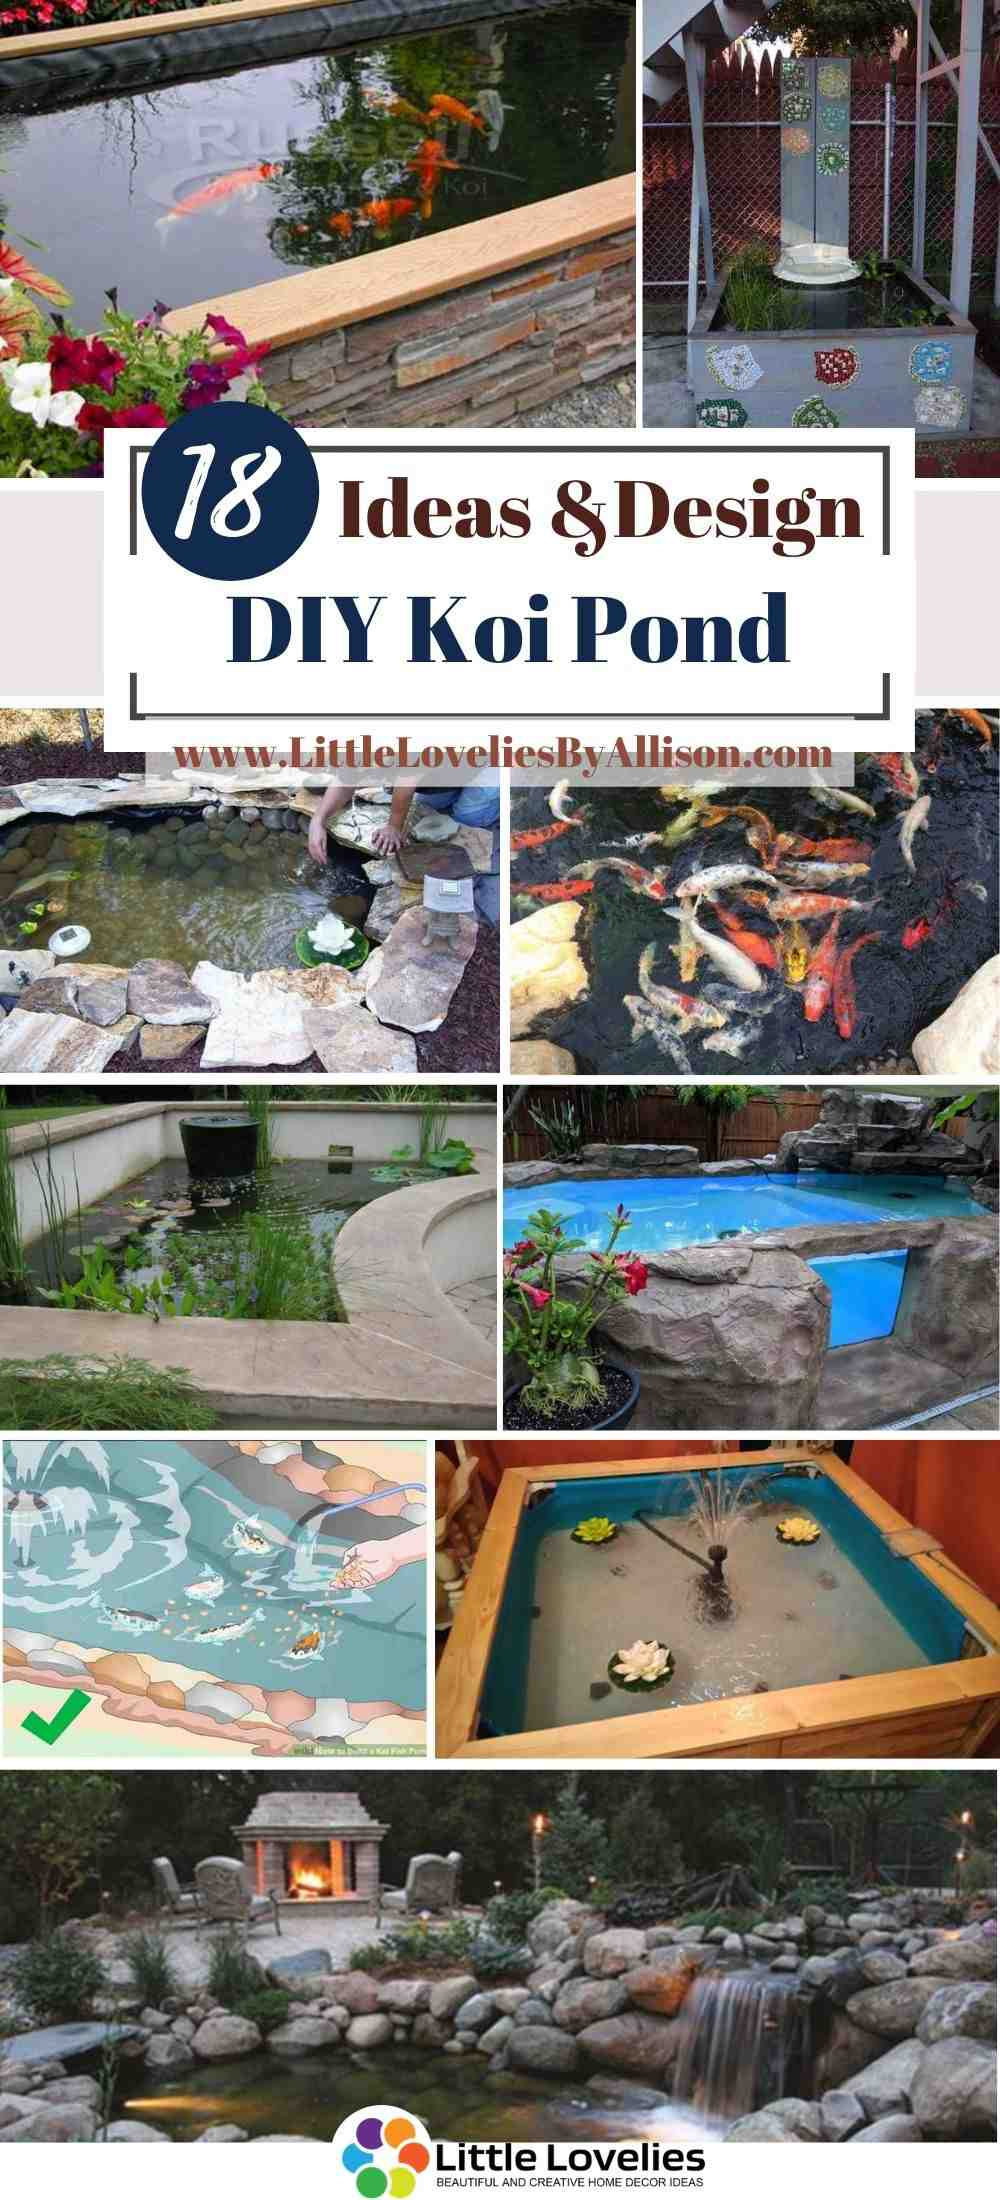 18 Diy Koi Pond Projects You Can Build Easily